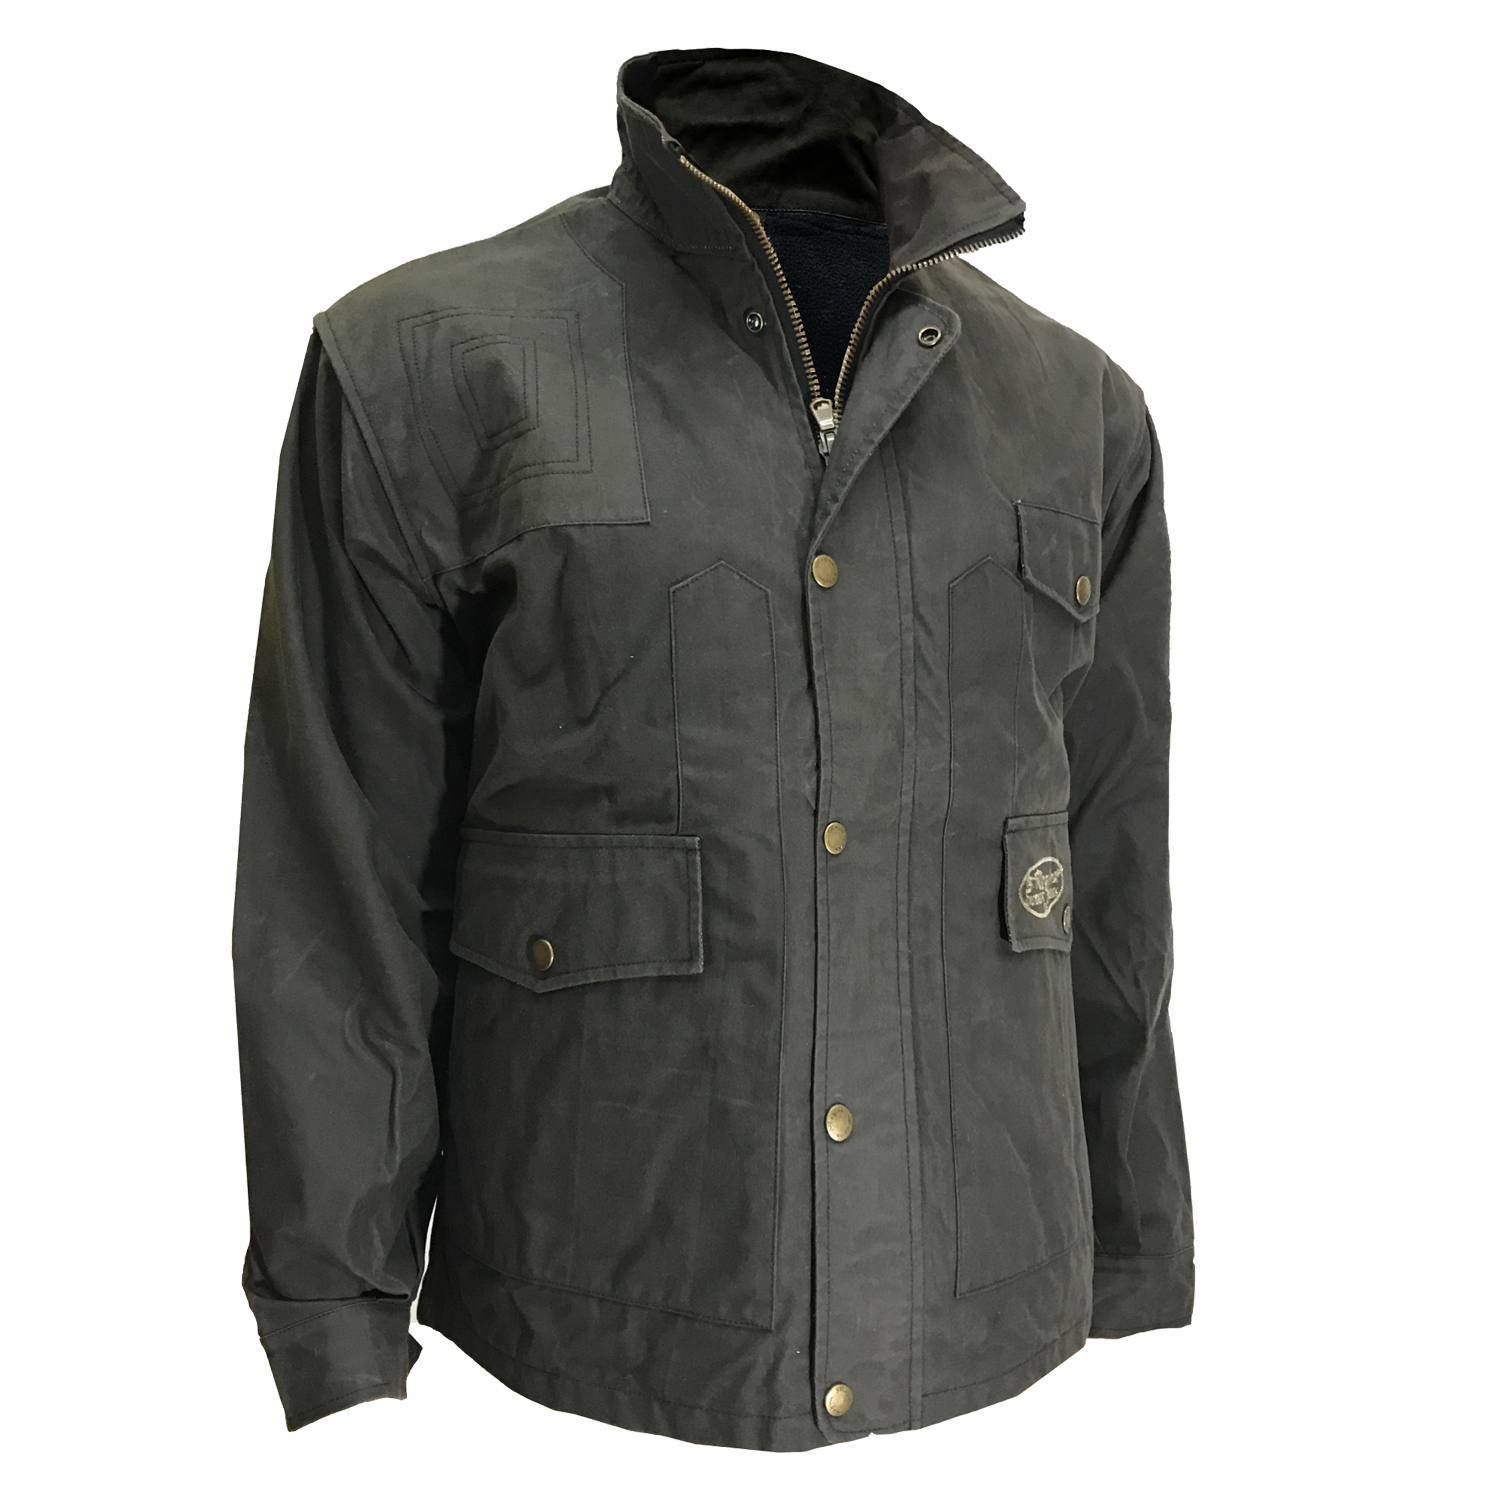 Jacket jacket in waxed cotton hunting man waterproof sports